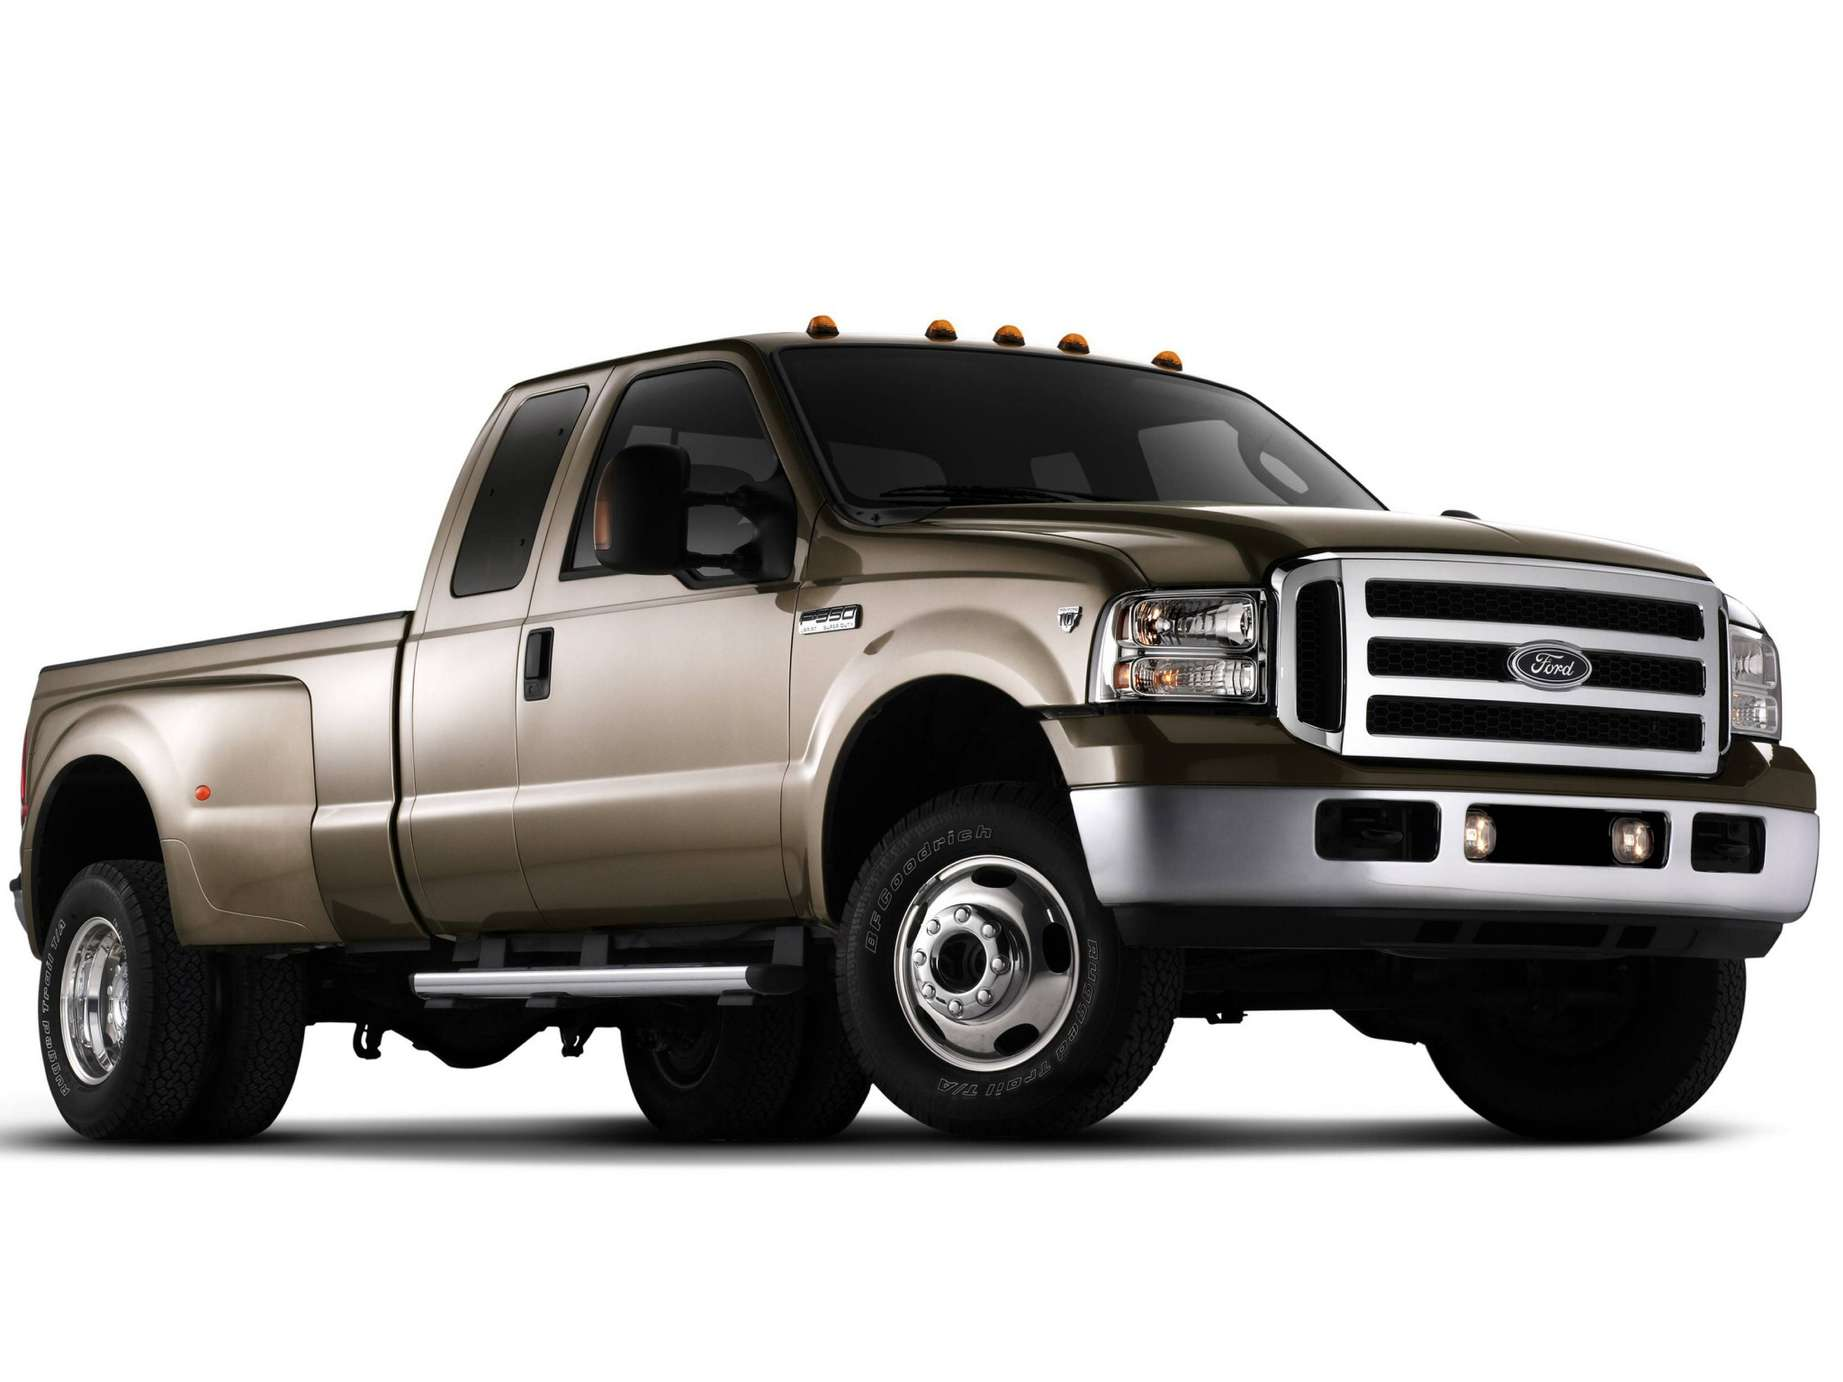 Ford F350 #8039961